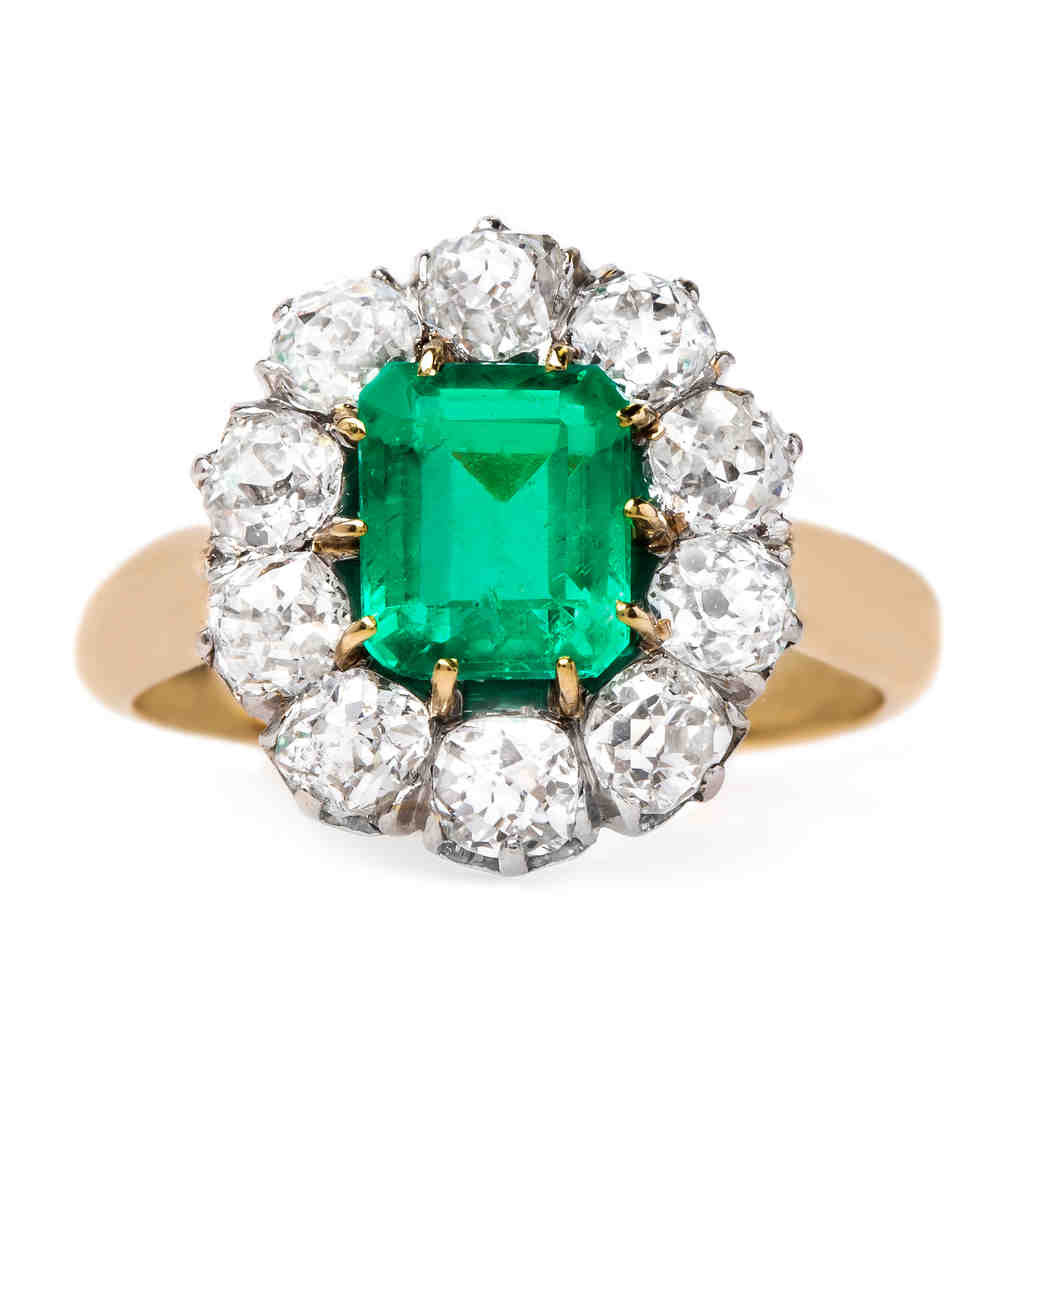 Emerald Engagement Rings for a OneofaKind Bride Martha